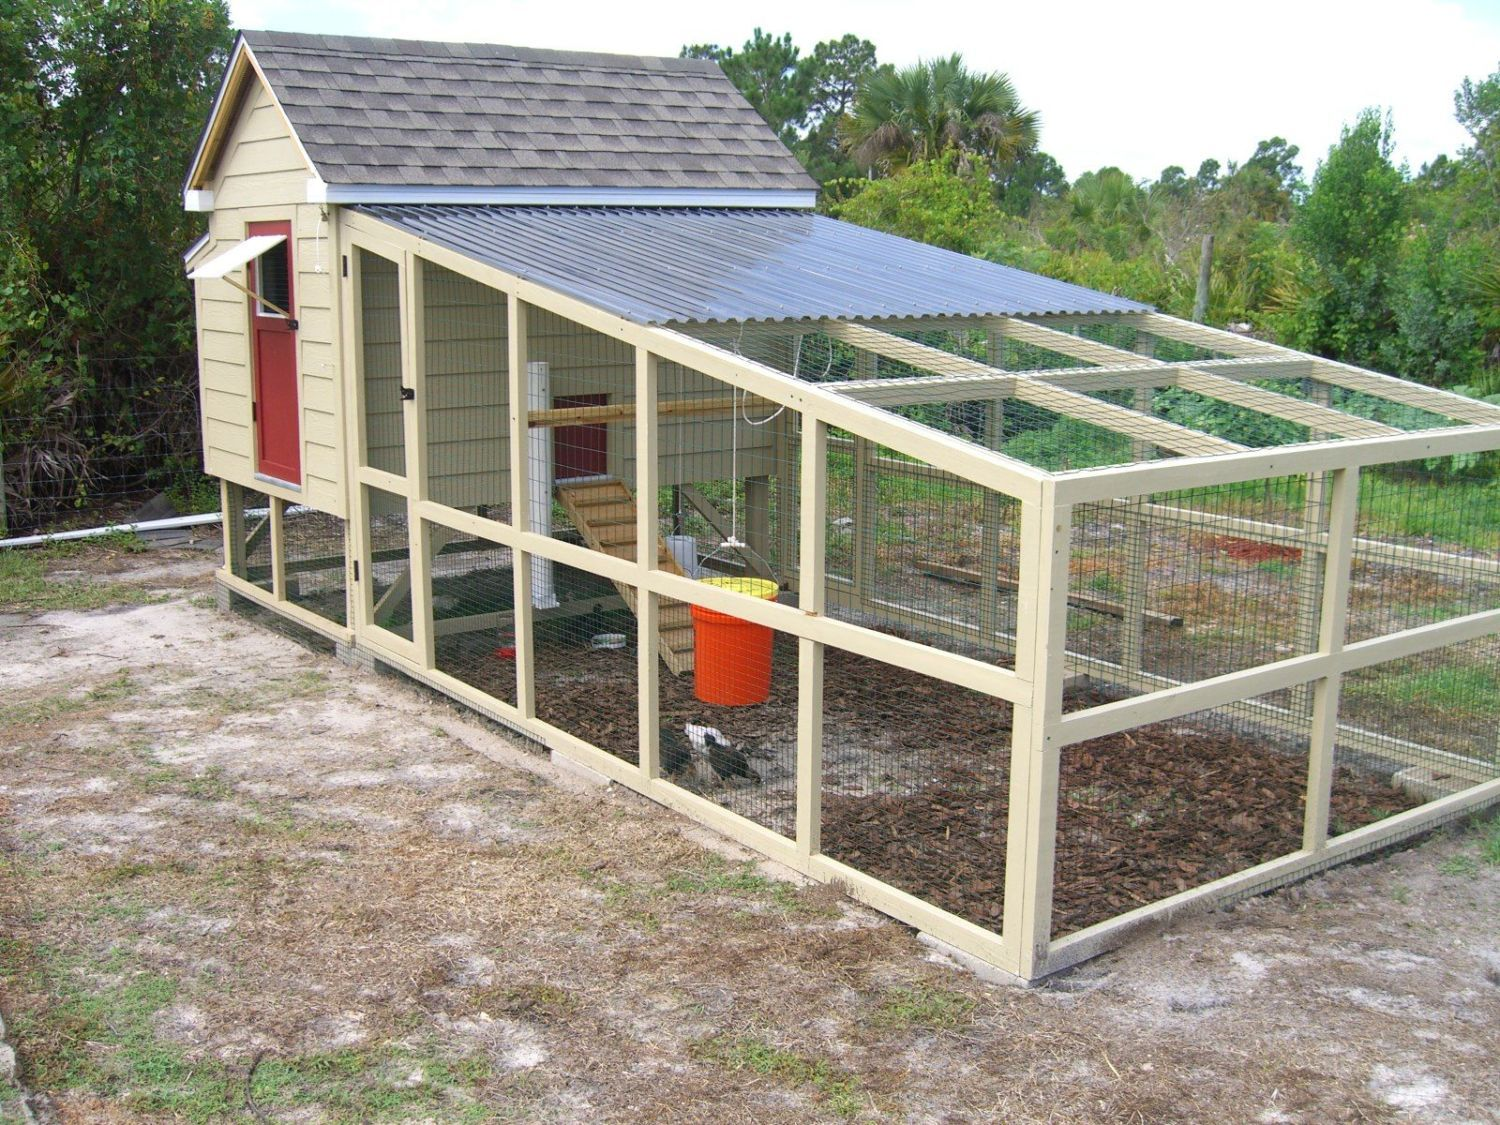 Chicken coop run 6ft x 8ft backyard chickens community for Small chicken coop with run